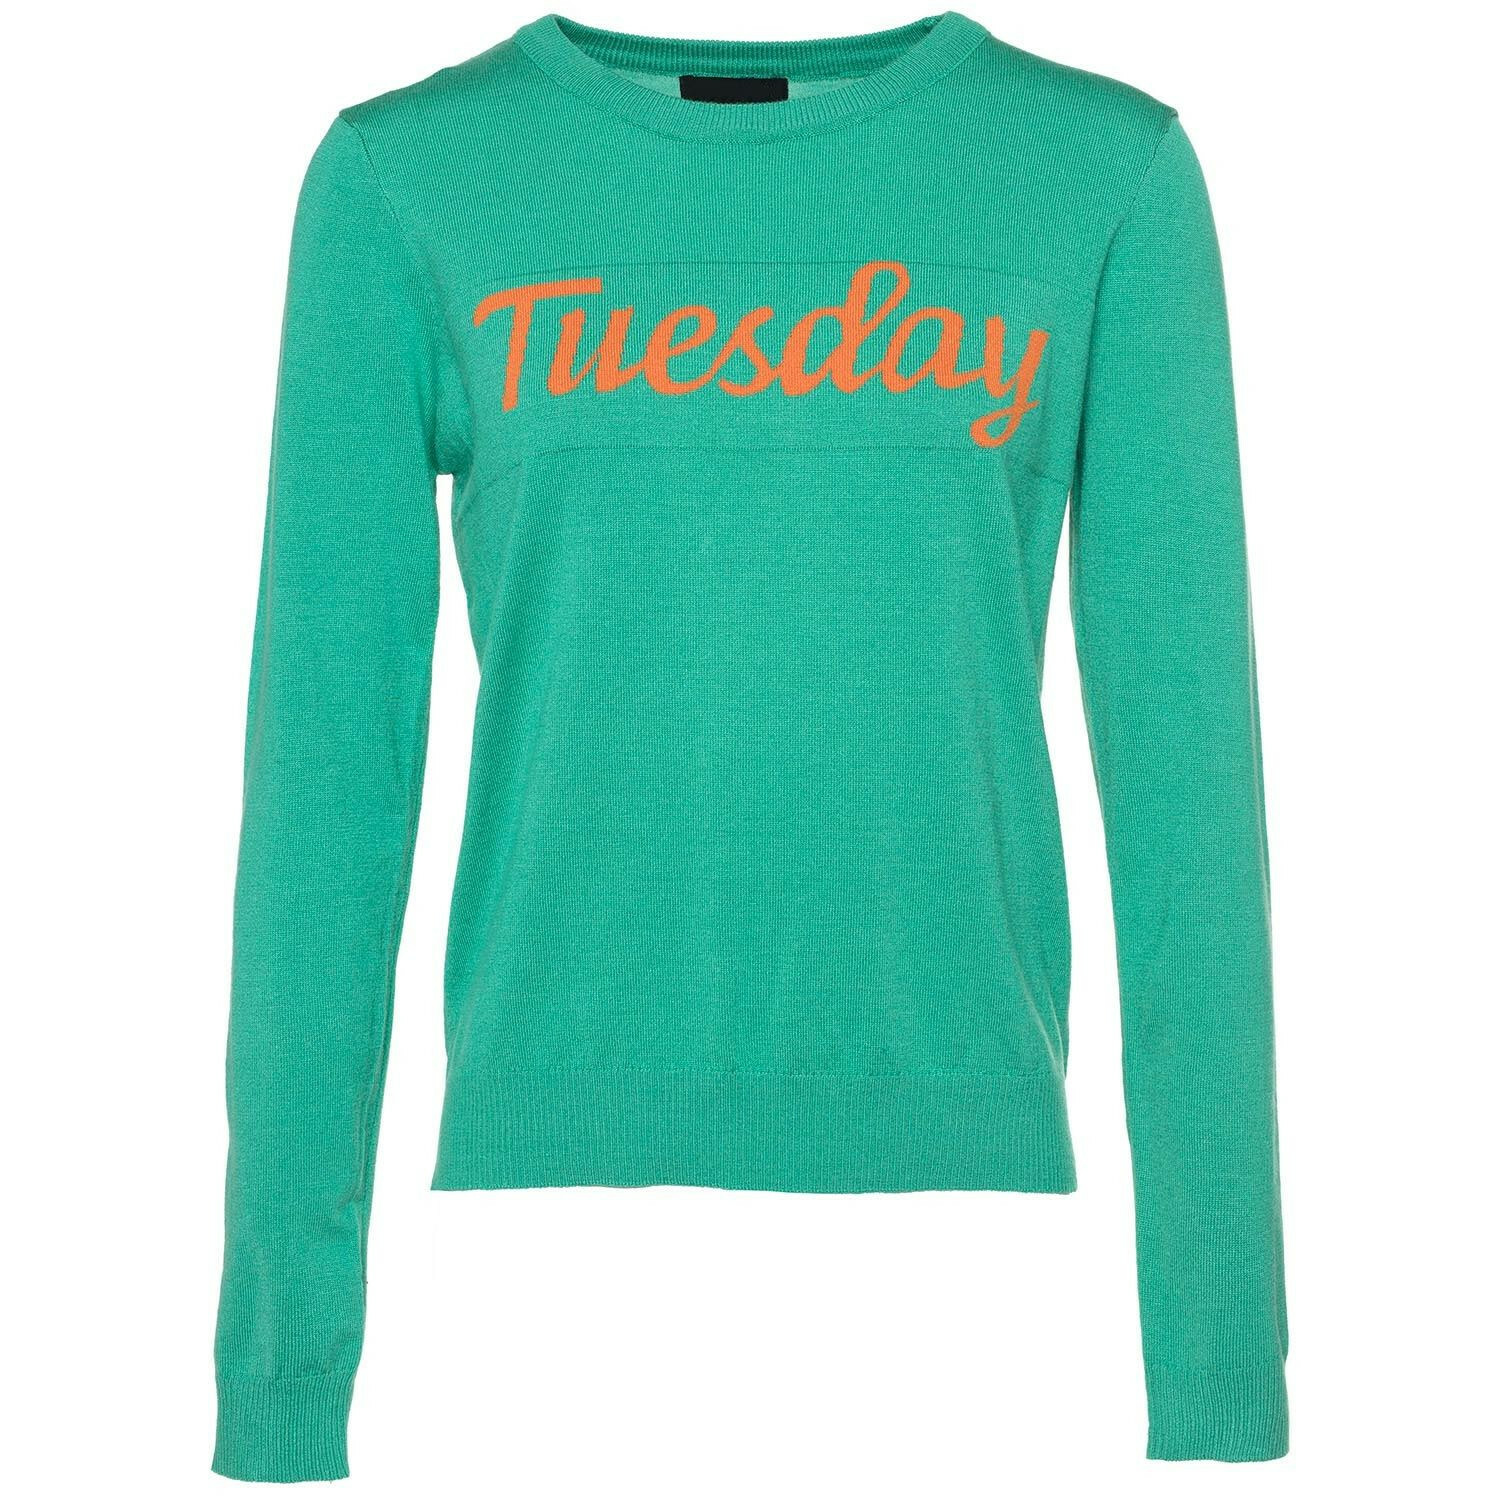 MY TUESDAY SWEATER